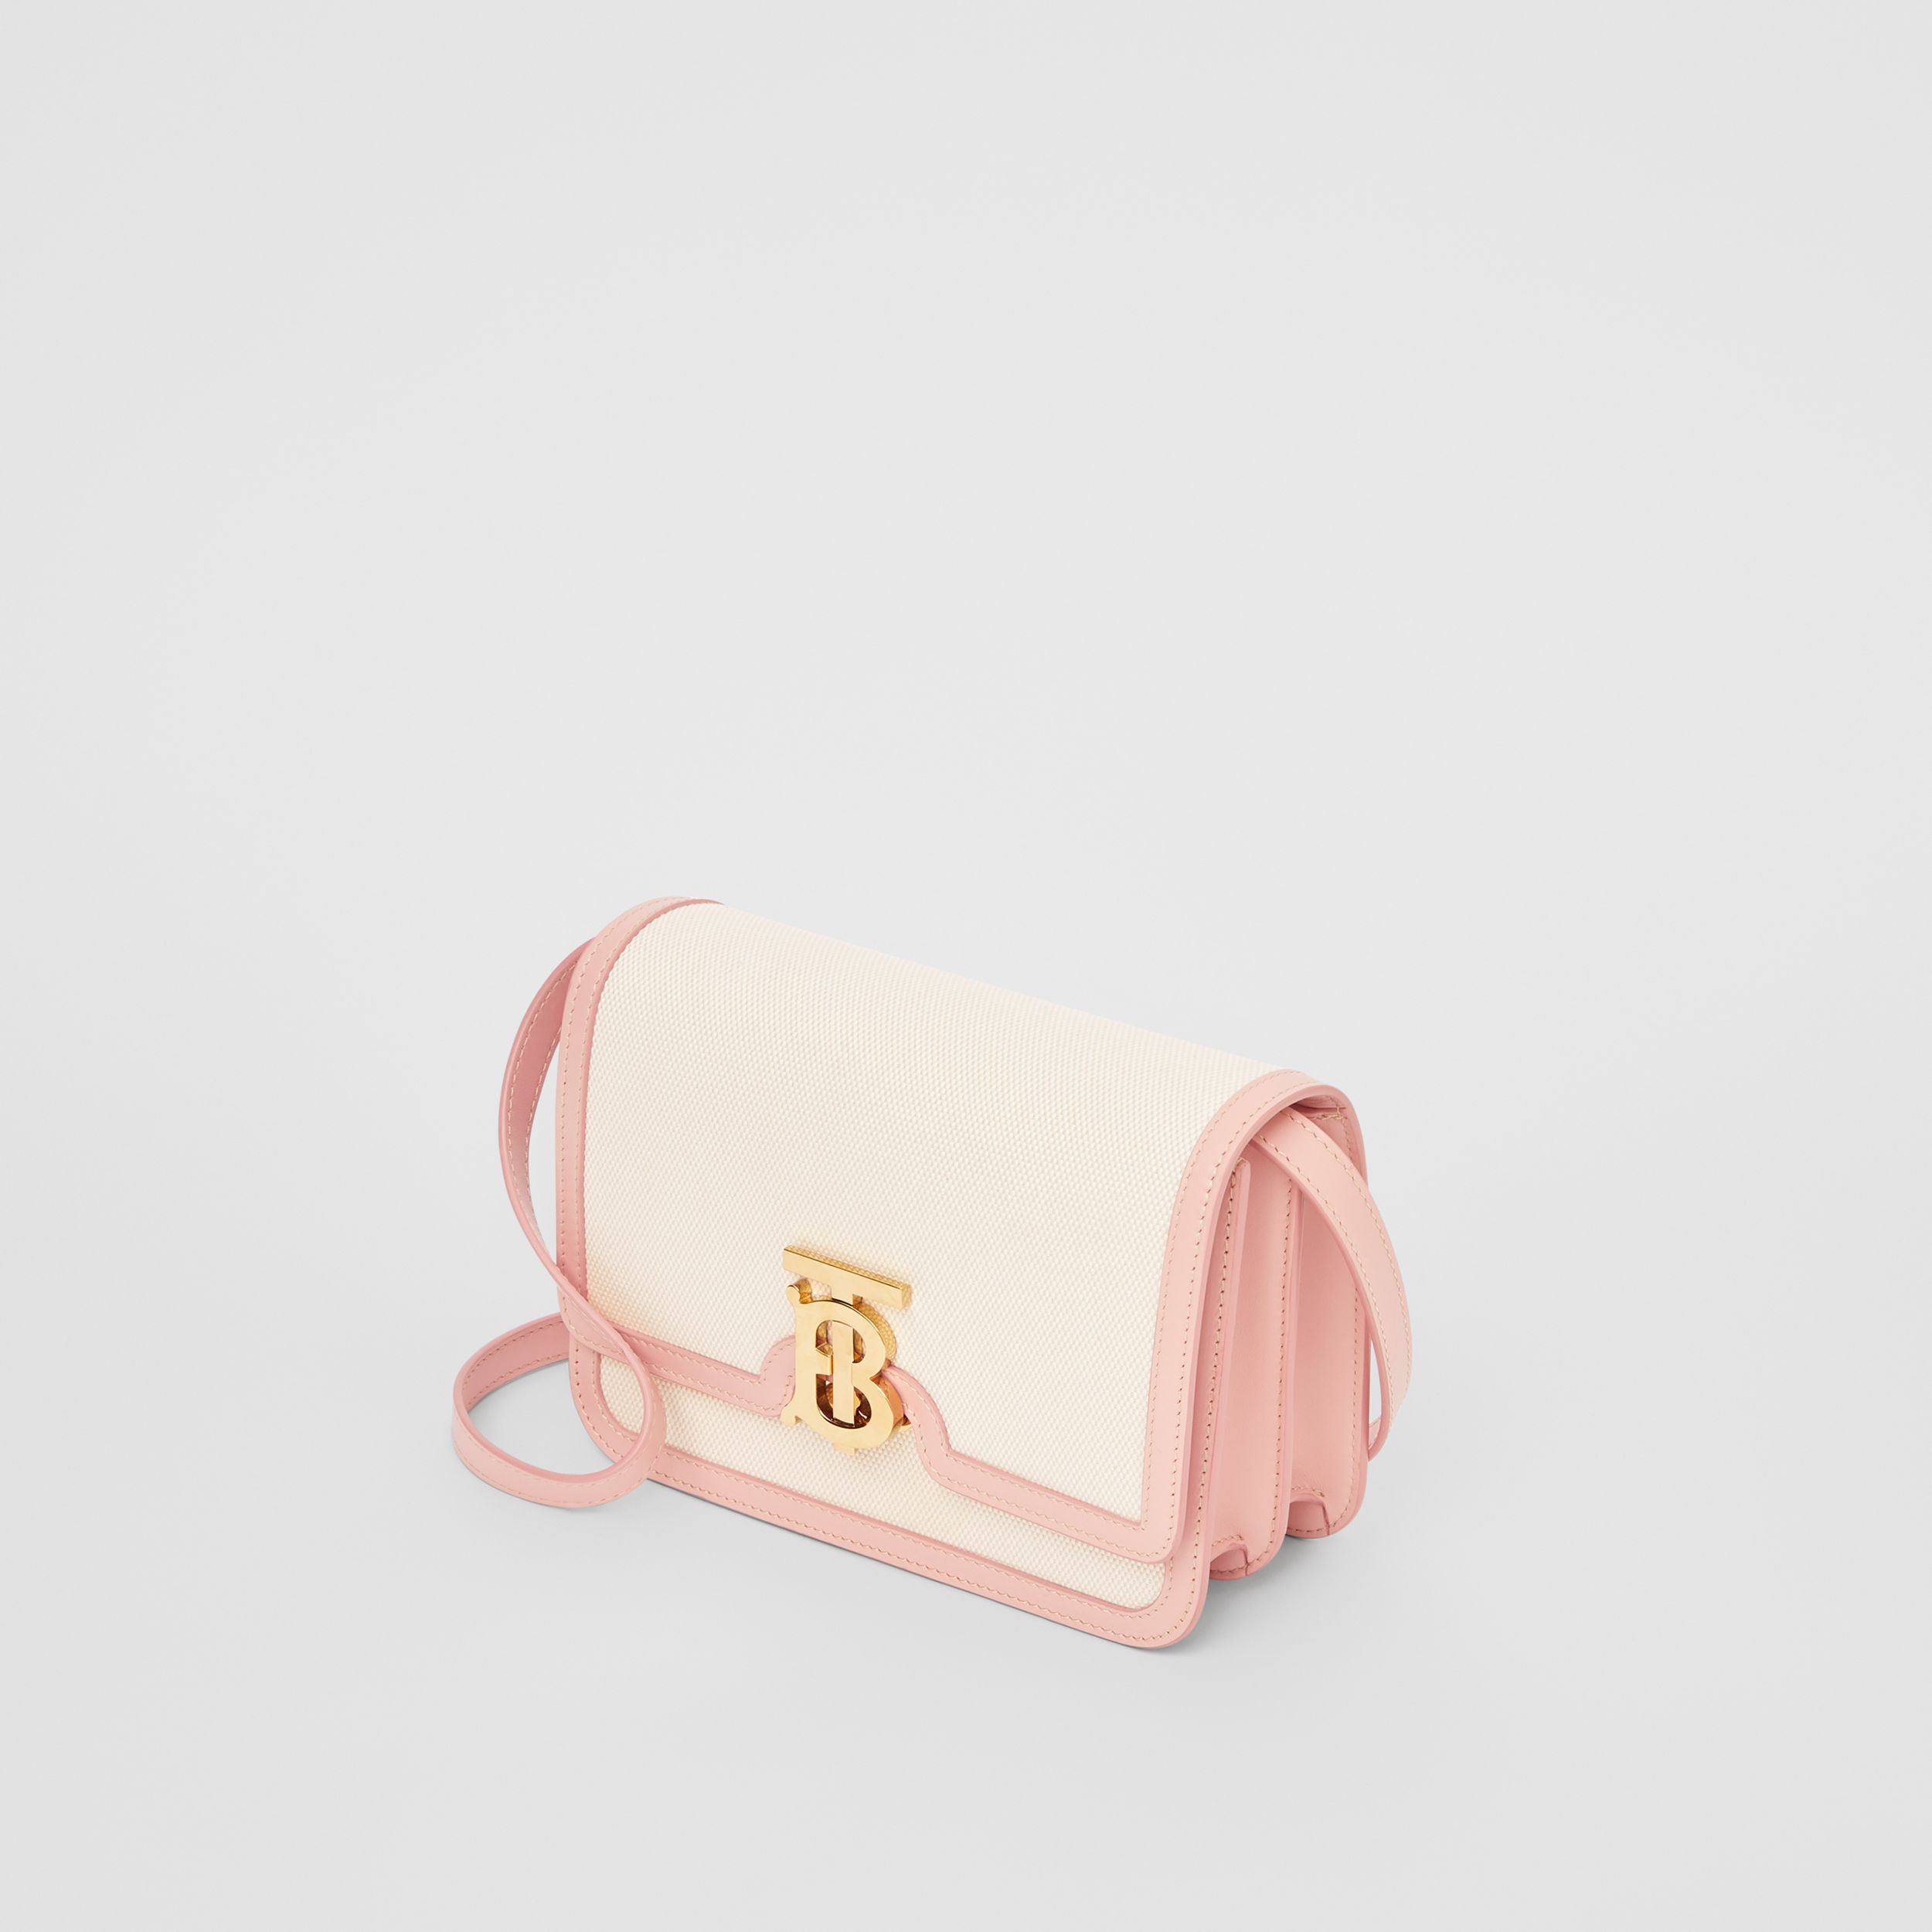 Small Two-tone Canvas and Leather TB Bag in Blush Pink - Women | Burberry United Kingdom - 4